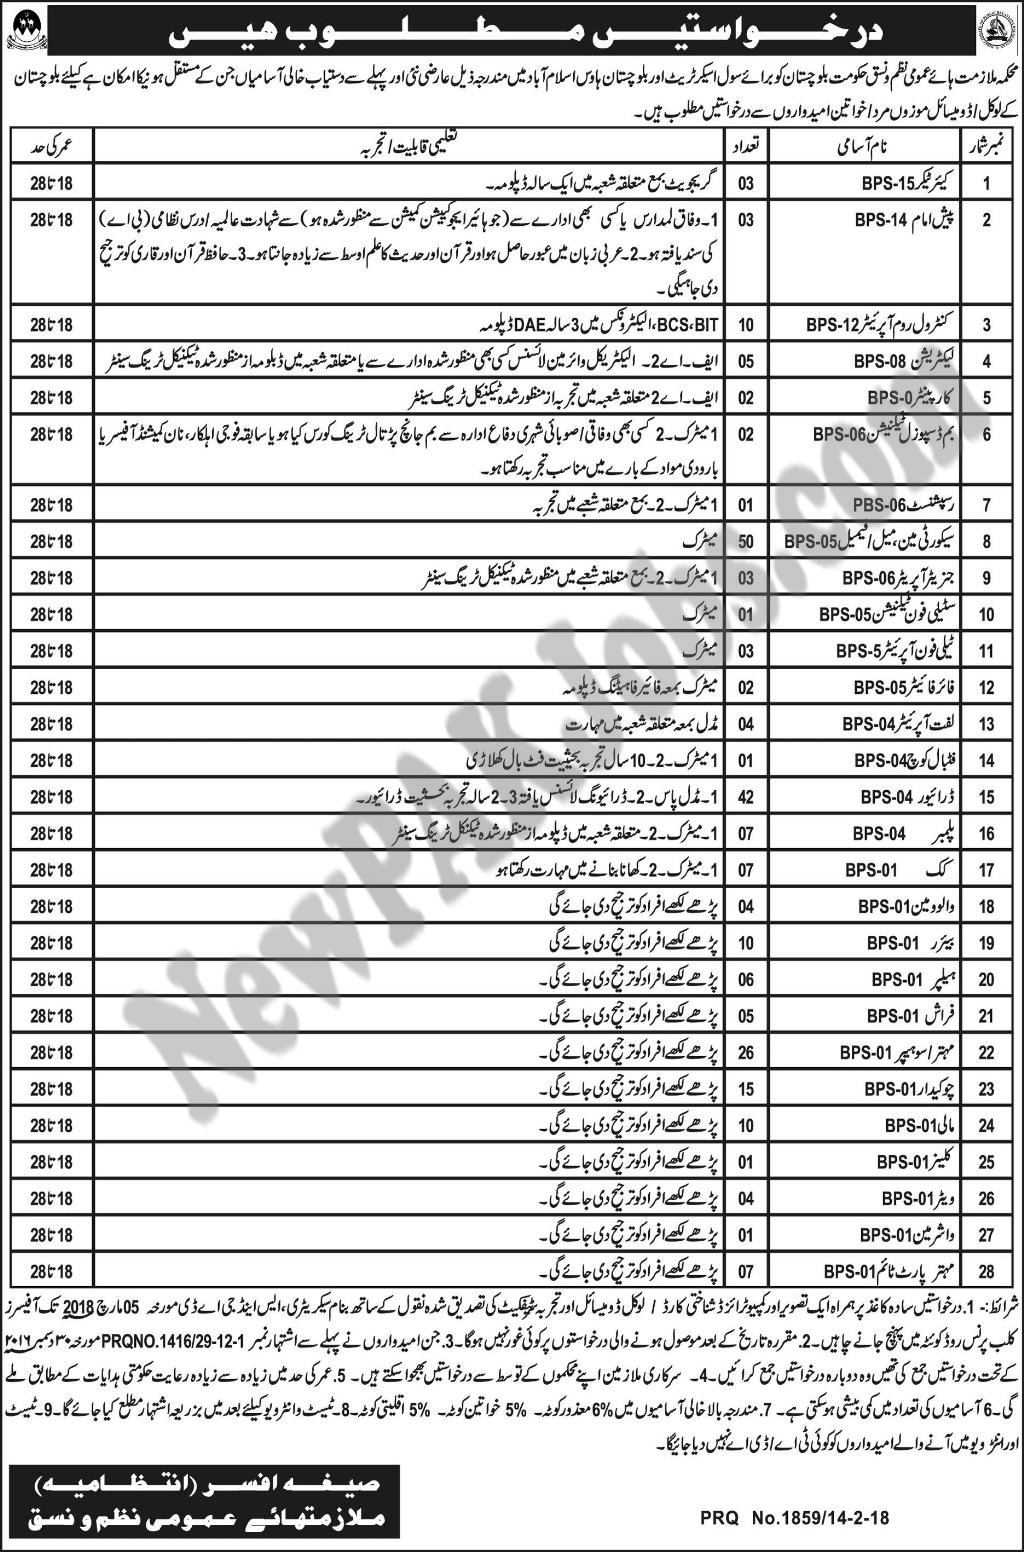 685 Latest Today Jobs in Mehkma Amomi Nazm O Nasq Balochistan, Civil Secretariat Balochistan House 2018